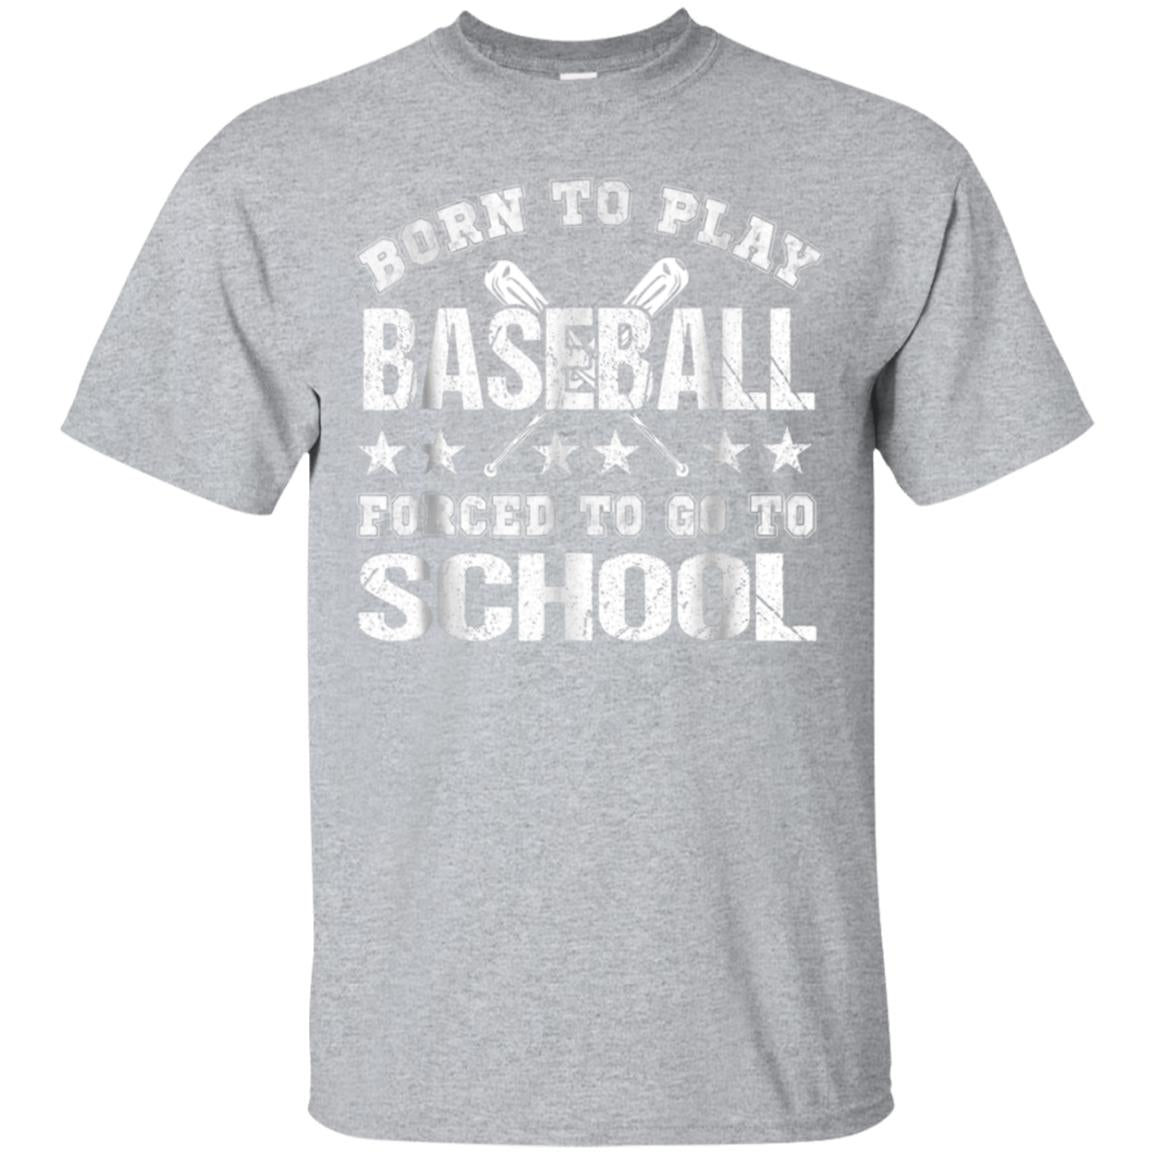 Born To Play Baseball Forced To Go To School TShirt 99promocode